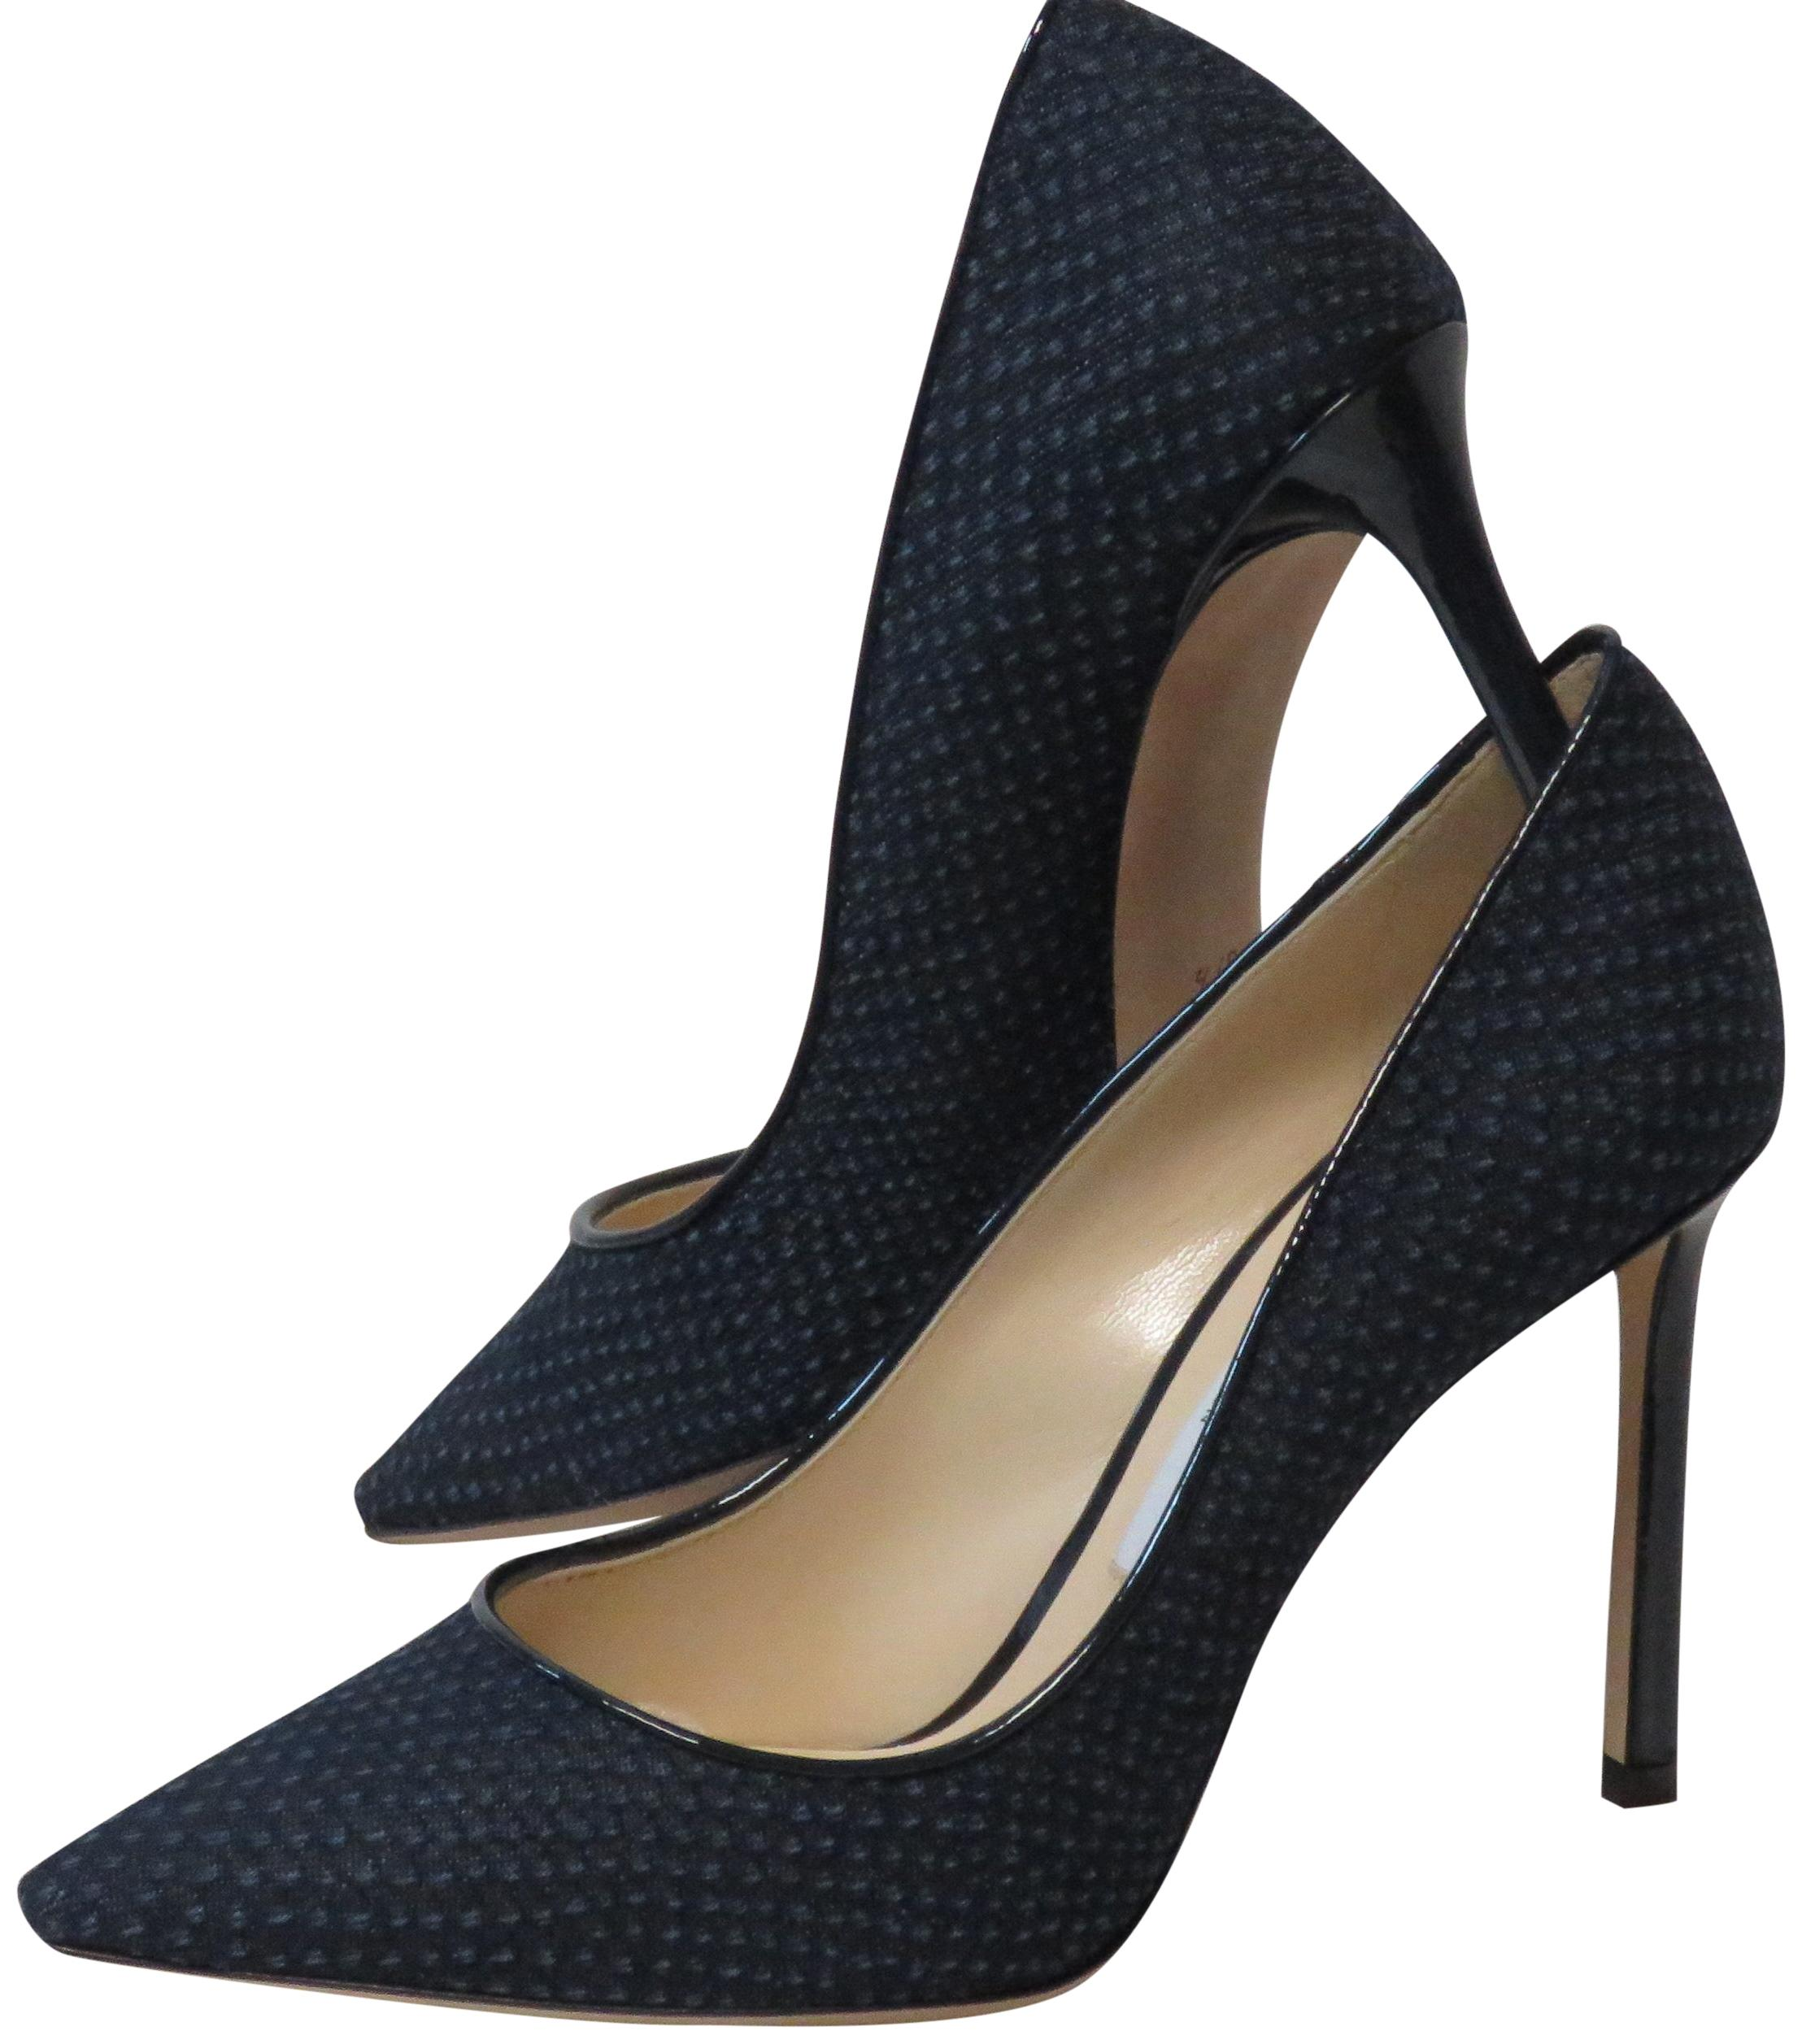 Jimmy Choo Romy 100 Navy Python Printed Denim Pointy Pumps Size EU 37.5 (Approx. US 7.5) Regular (M, B)